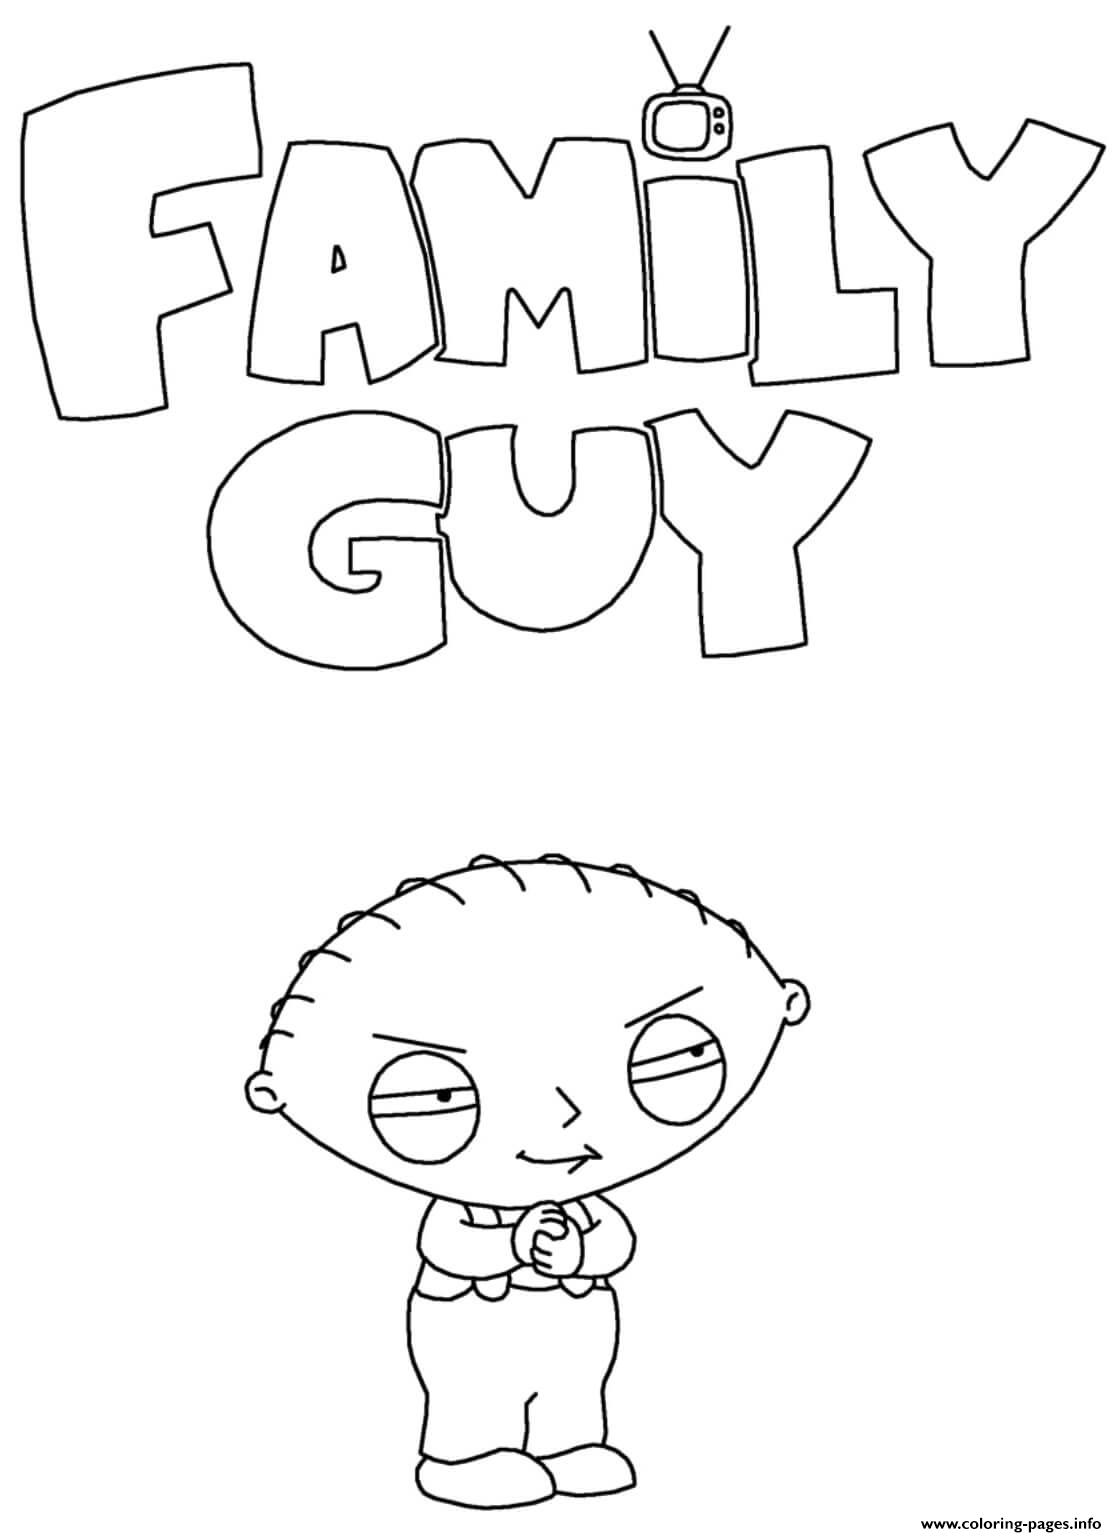 Family Guy Stewie Griffin coloring pages